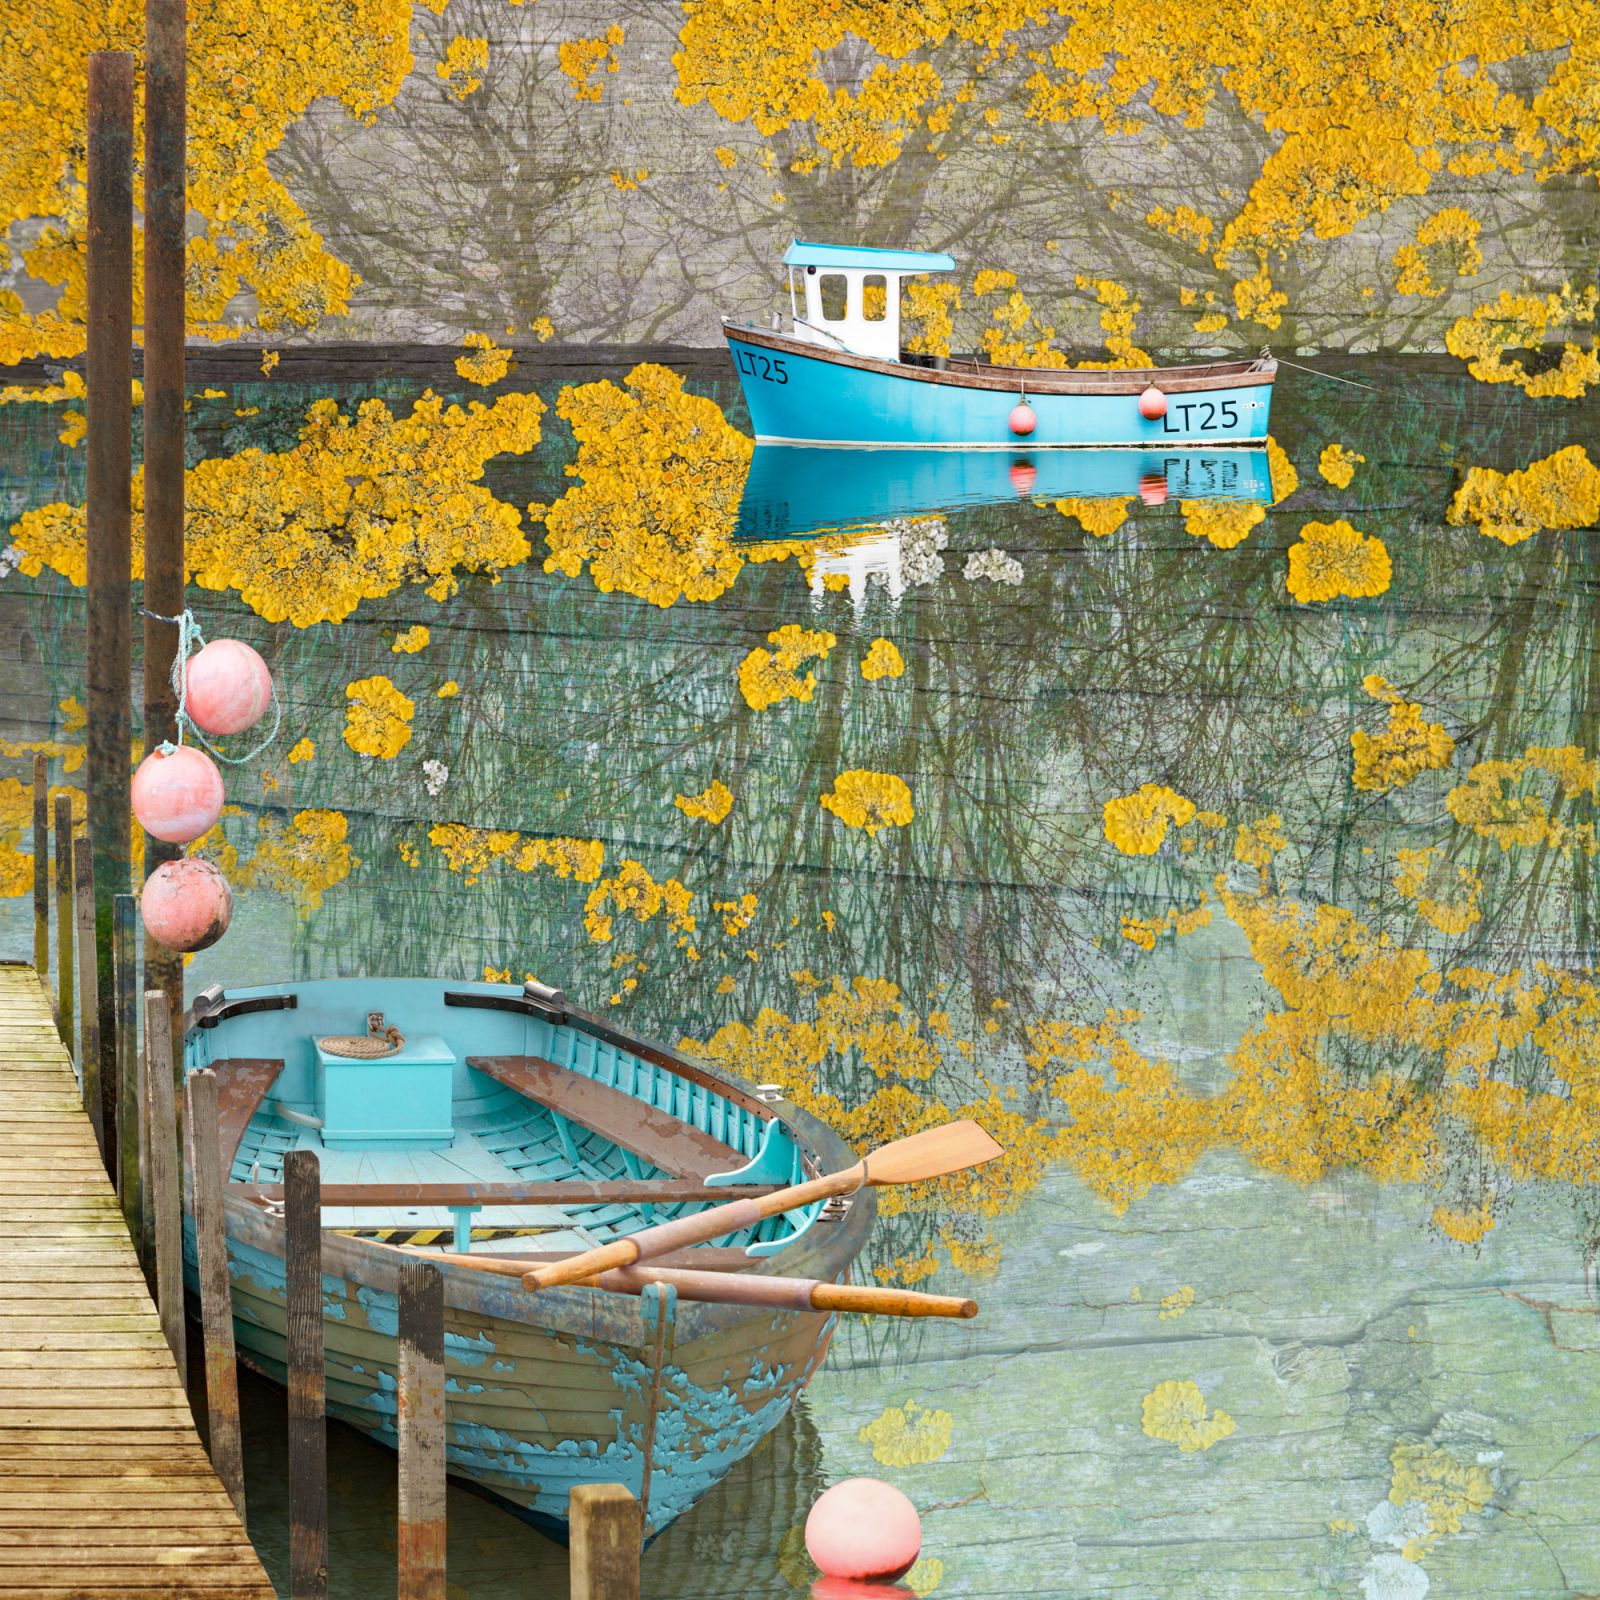 contemporary digital photomontage artist, Greeting card, fine art card, claire gill, clairegill artist, buy cards, art cards, seascape cards, boats, coastal art, beach art, Suffolk coast, Southwold harbour, southwold ferry boat, autumn